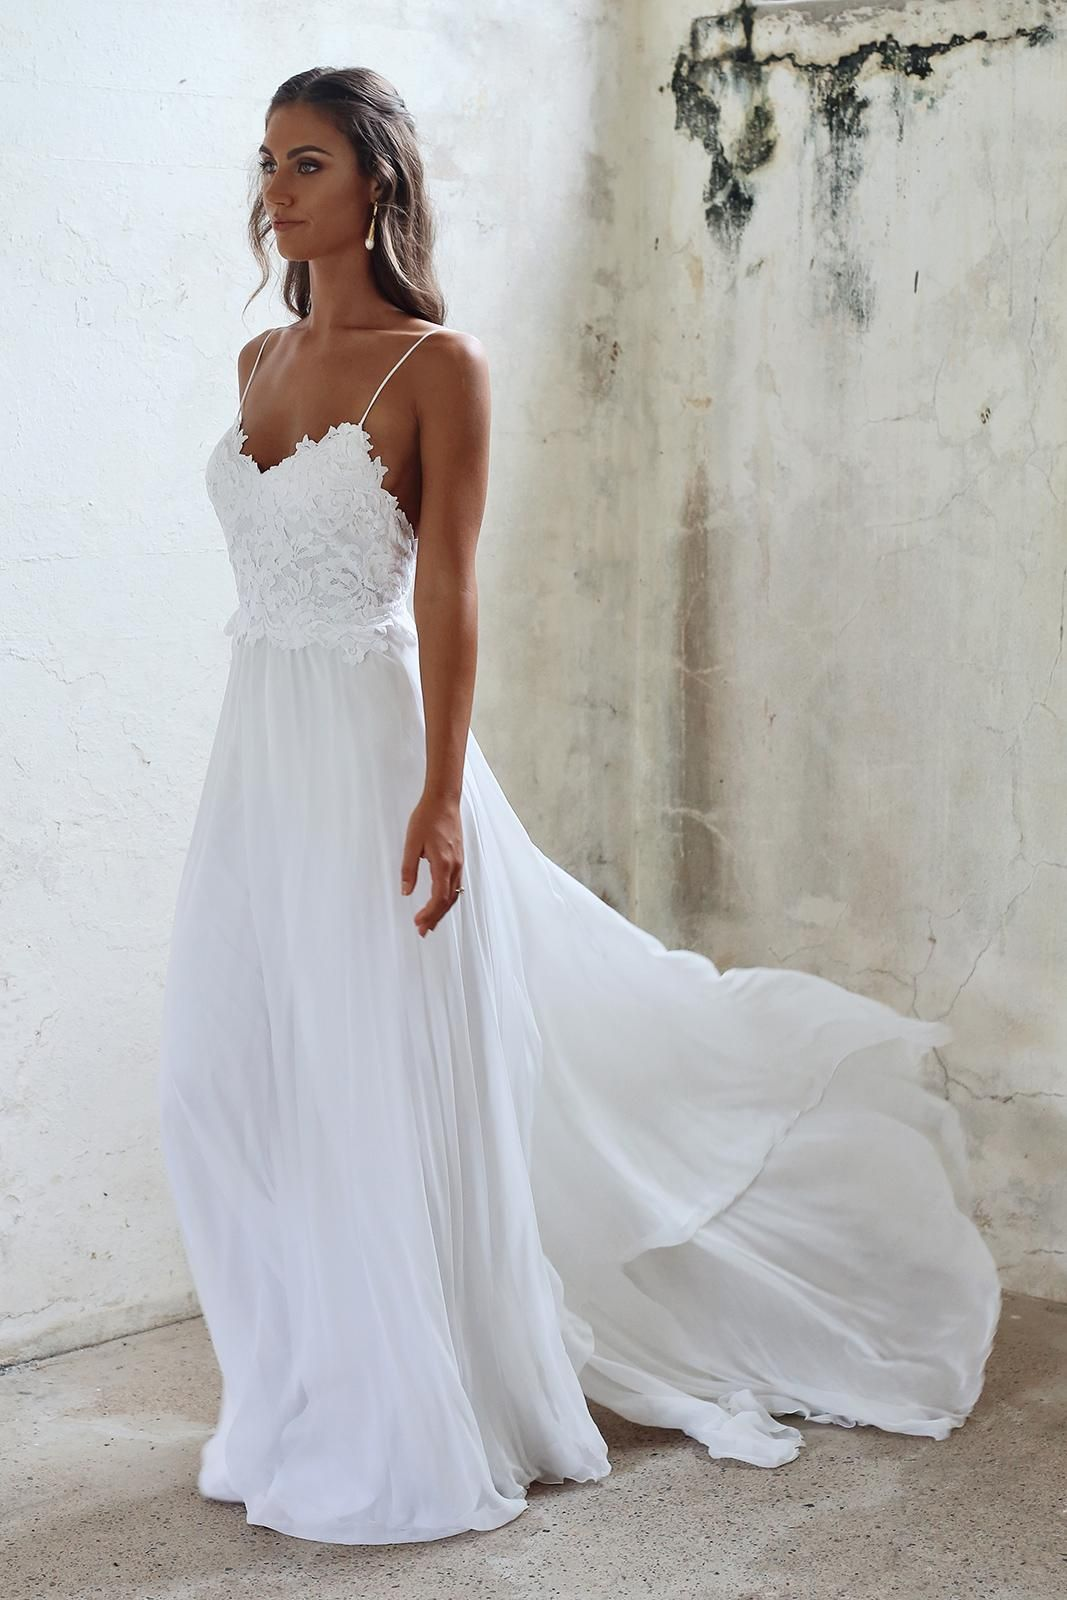 Tara | Pinterest | Elegant wedding dress, Wedding dress and Wedding